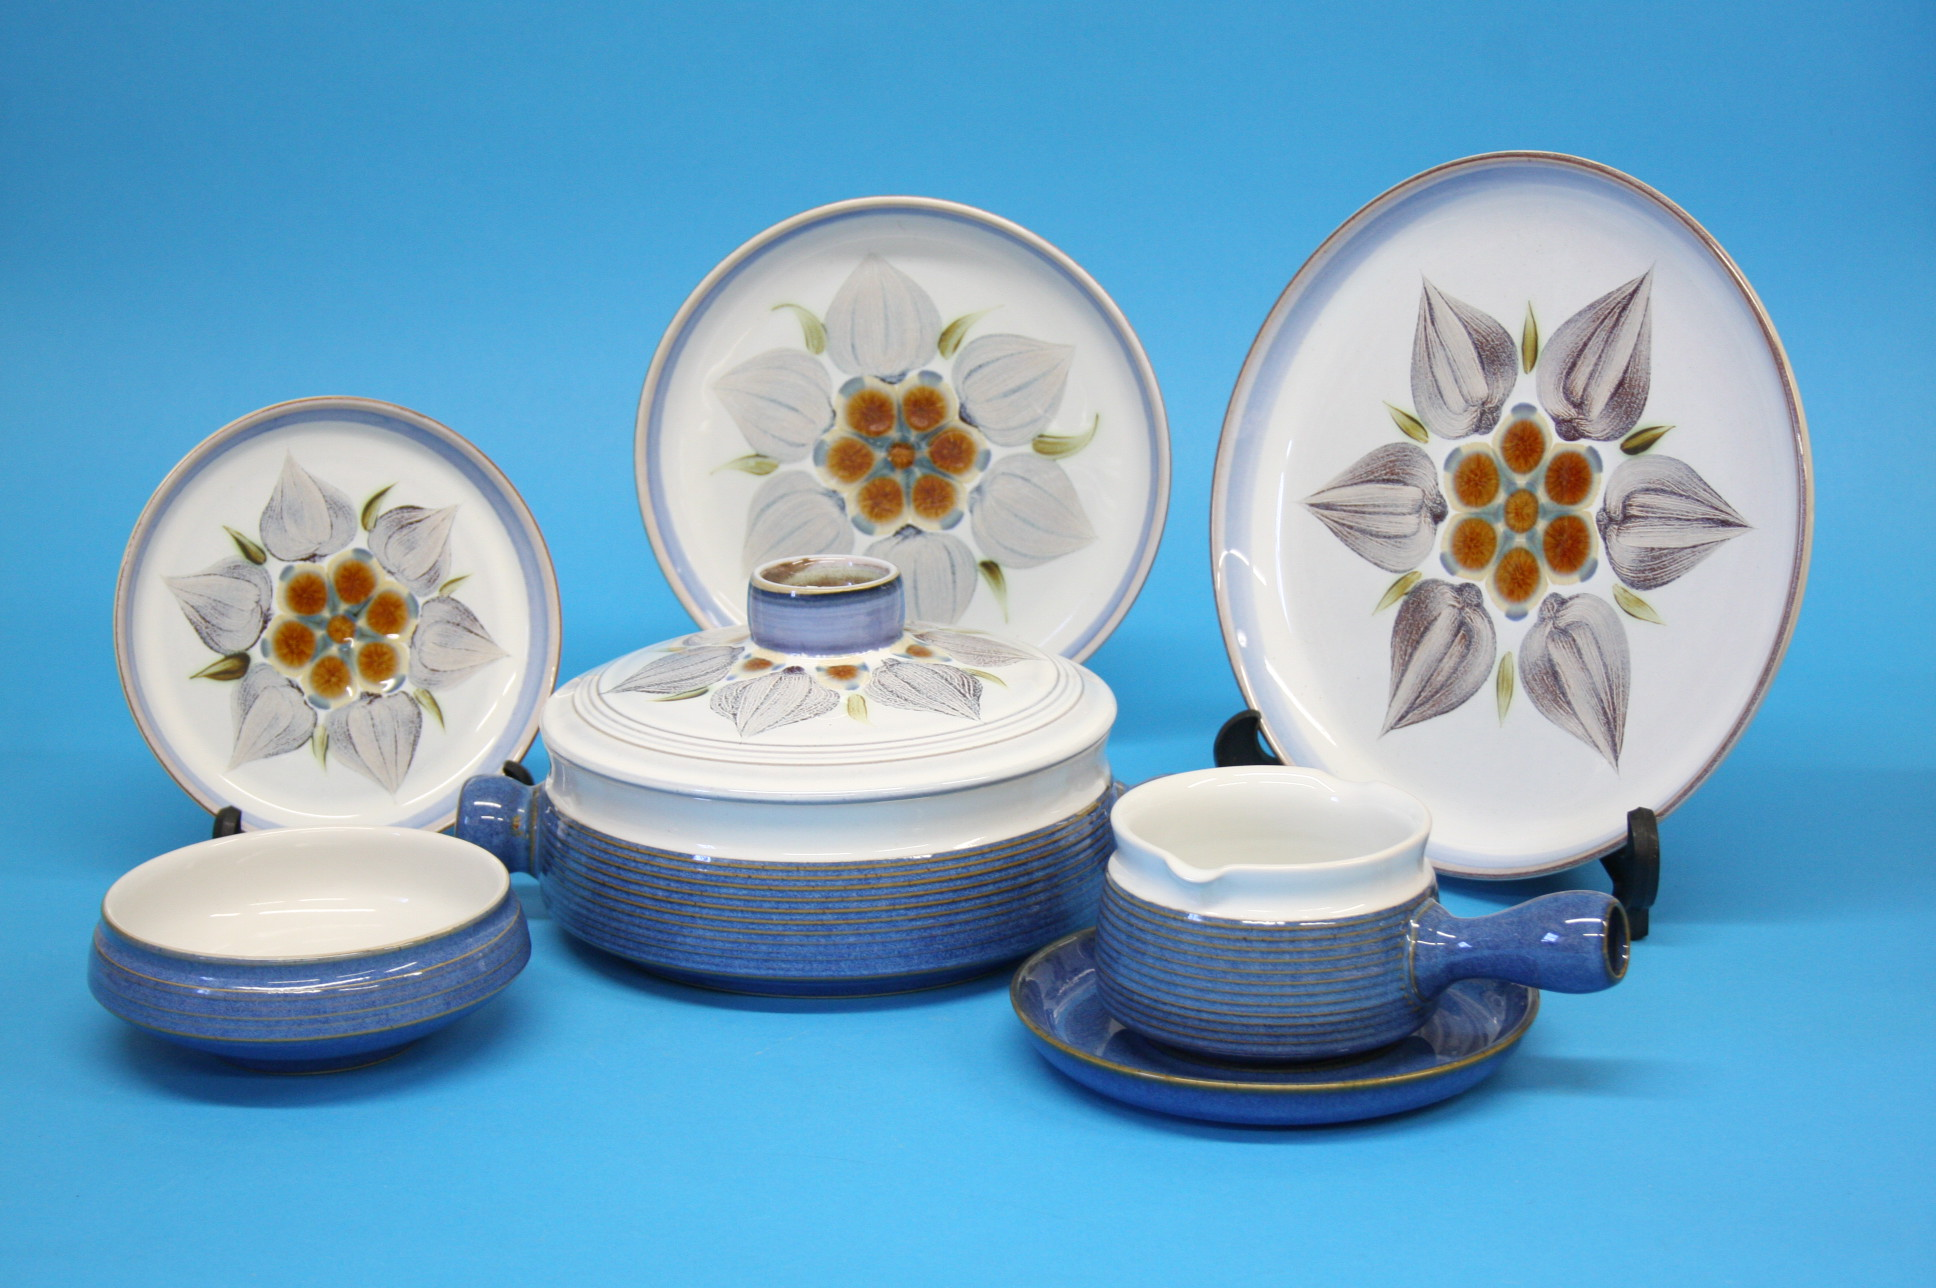 A Denby Chatsworth dinner service, comprising two